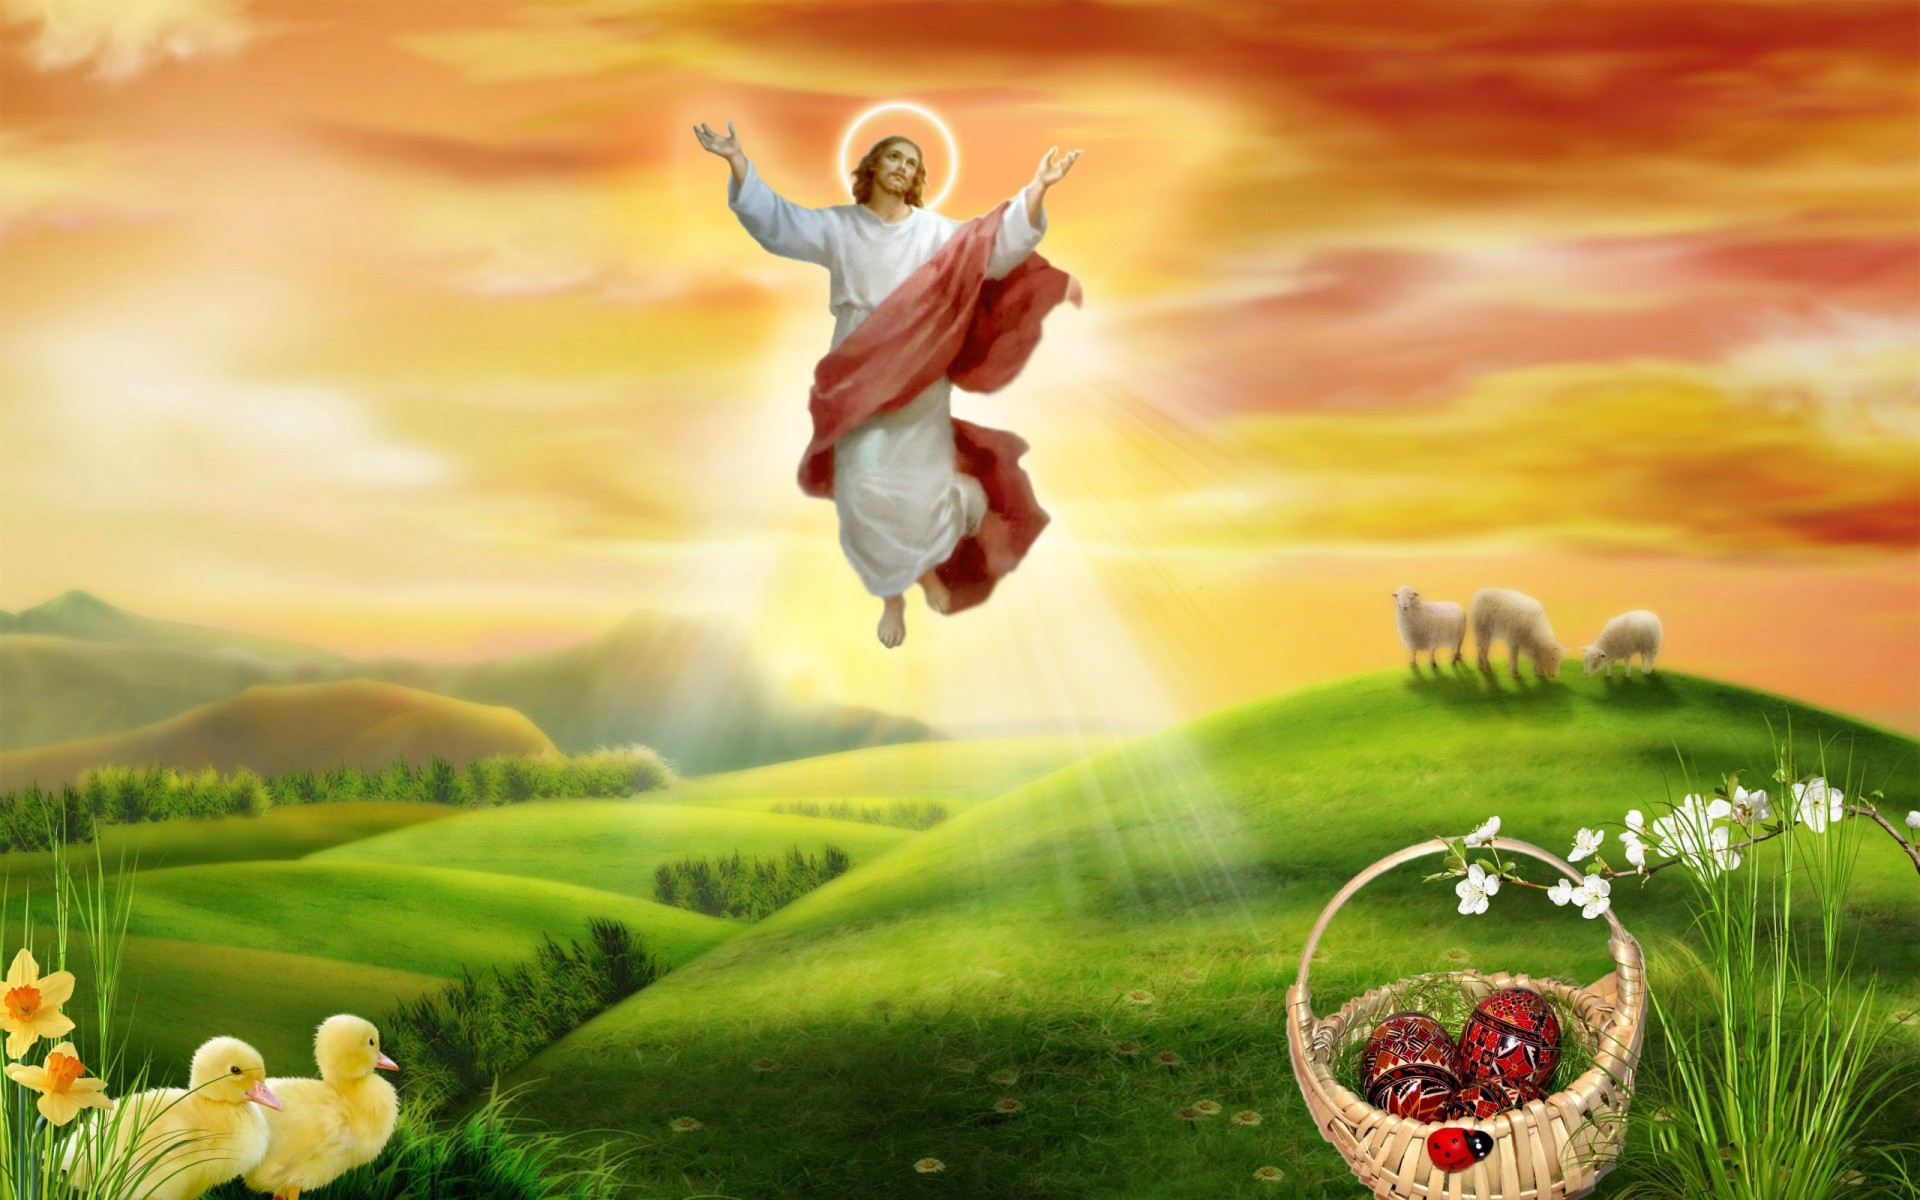 easter-jesus-wallpaper-2.jpg